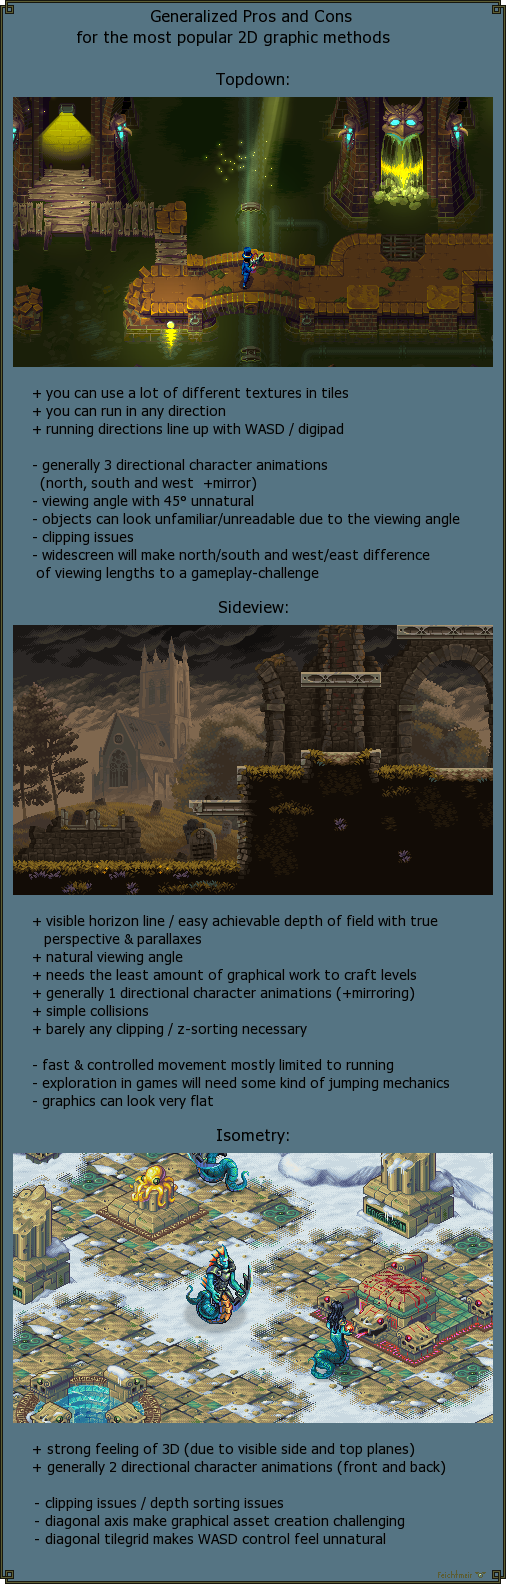 2D Graphics Methods - Pros and Cons by Cyangmou on DeviantArt